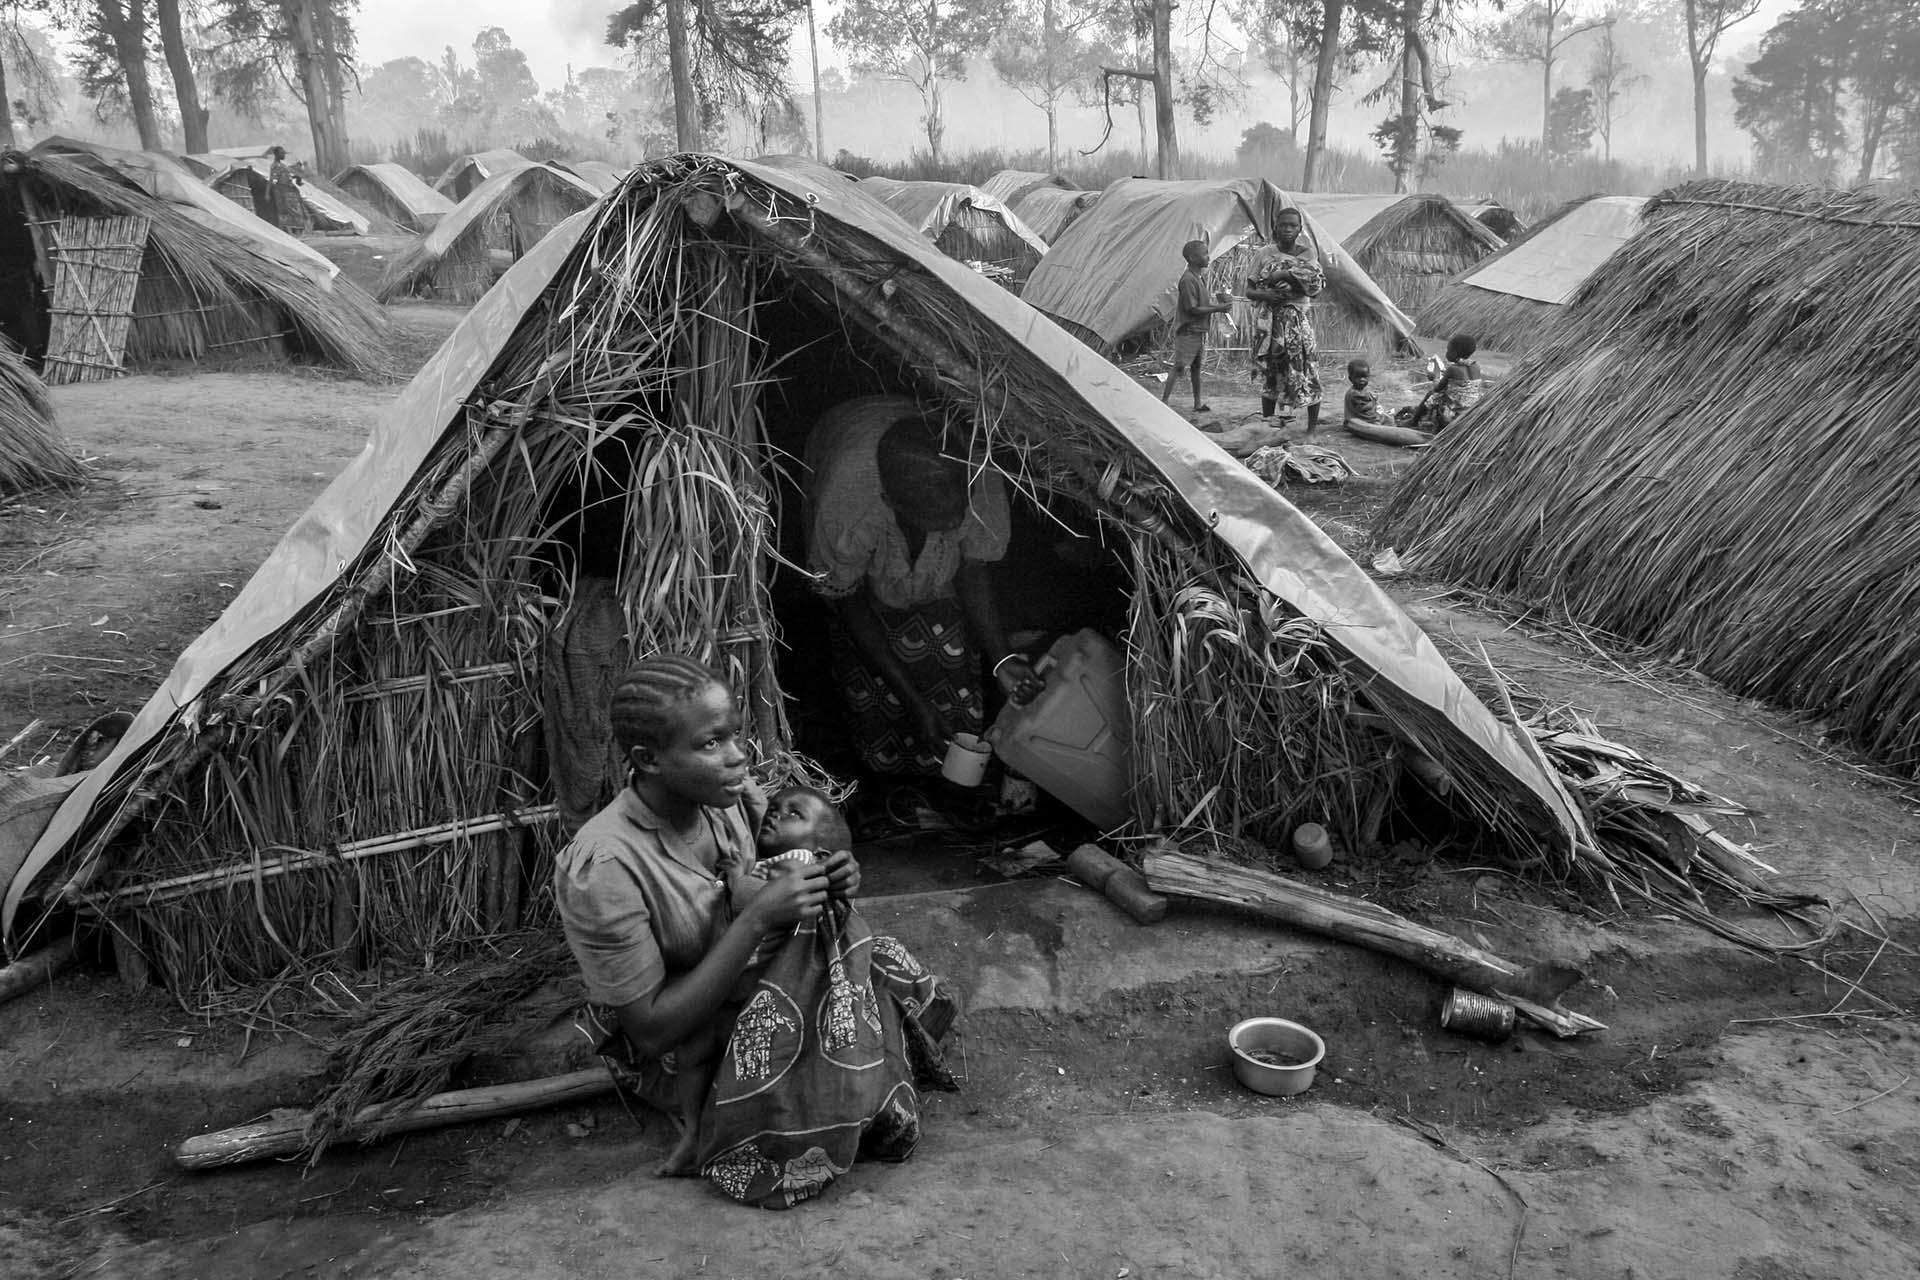 IDP camp sprang up quickly  after crashes between armed groups and government soldiers in the Village of Gety, 60km southwest of Bunia, regional capital of mineral-rich Ituri region in eastern DR Congo.